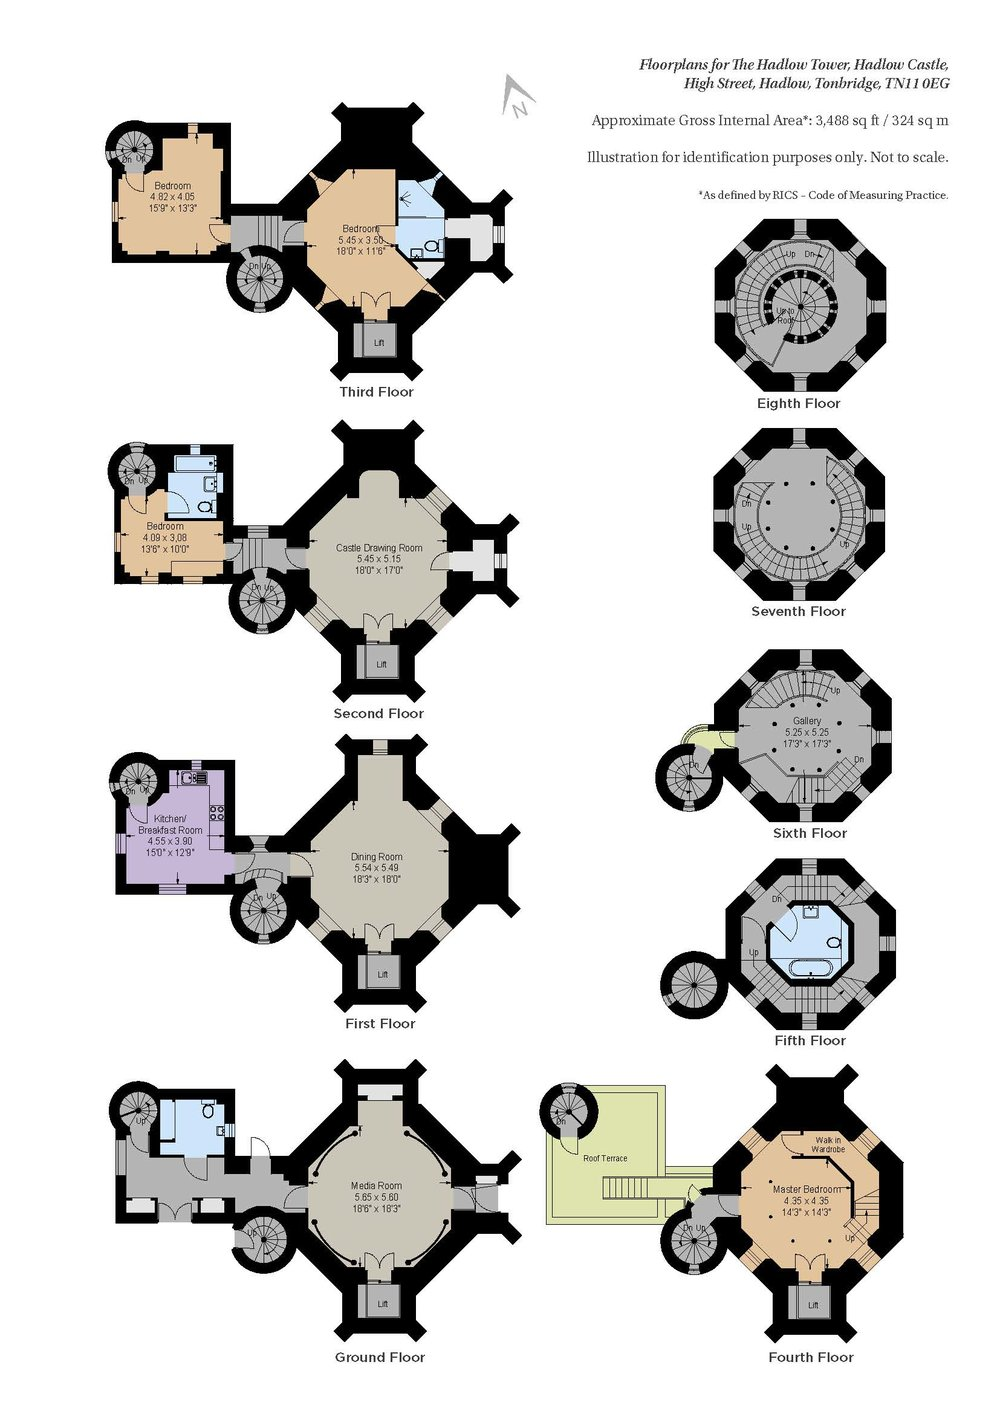 The Hadlow Tower Floor Plans.jpg